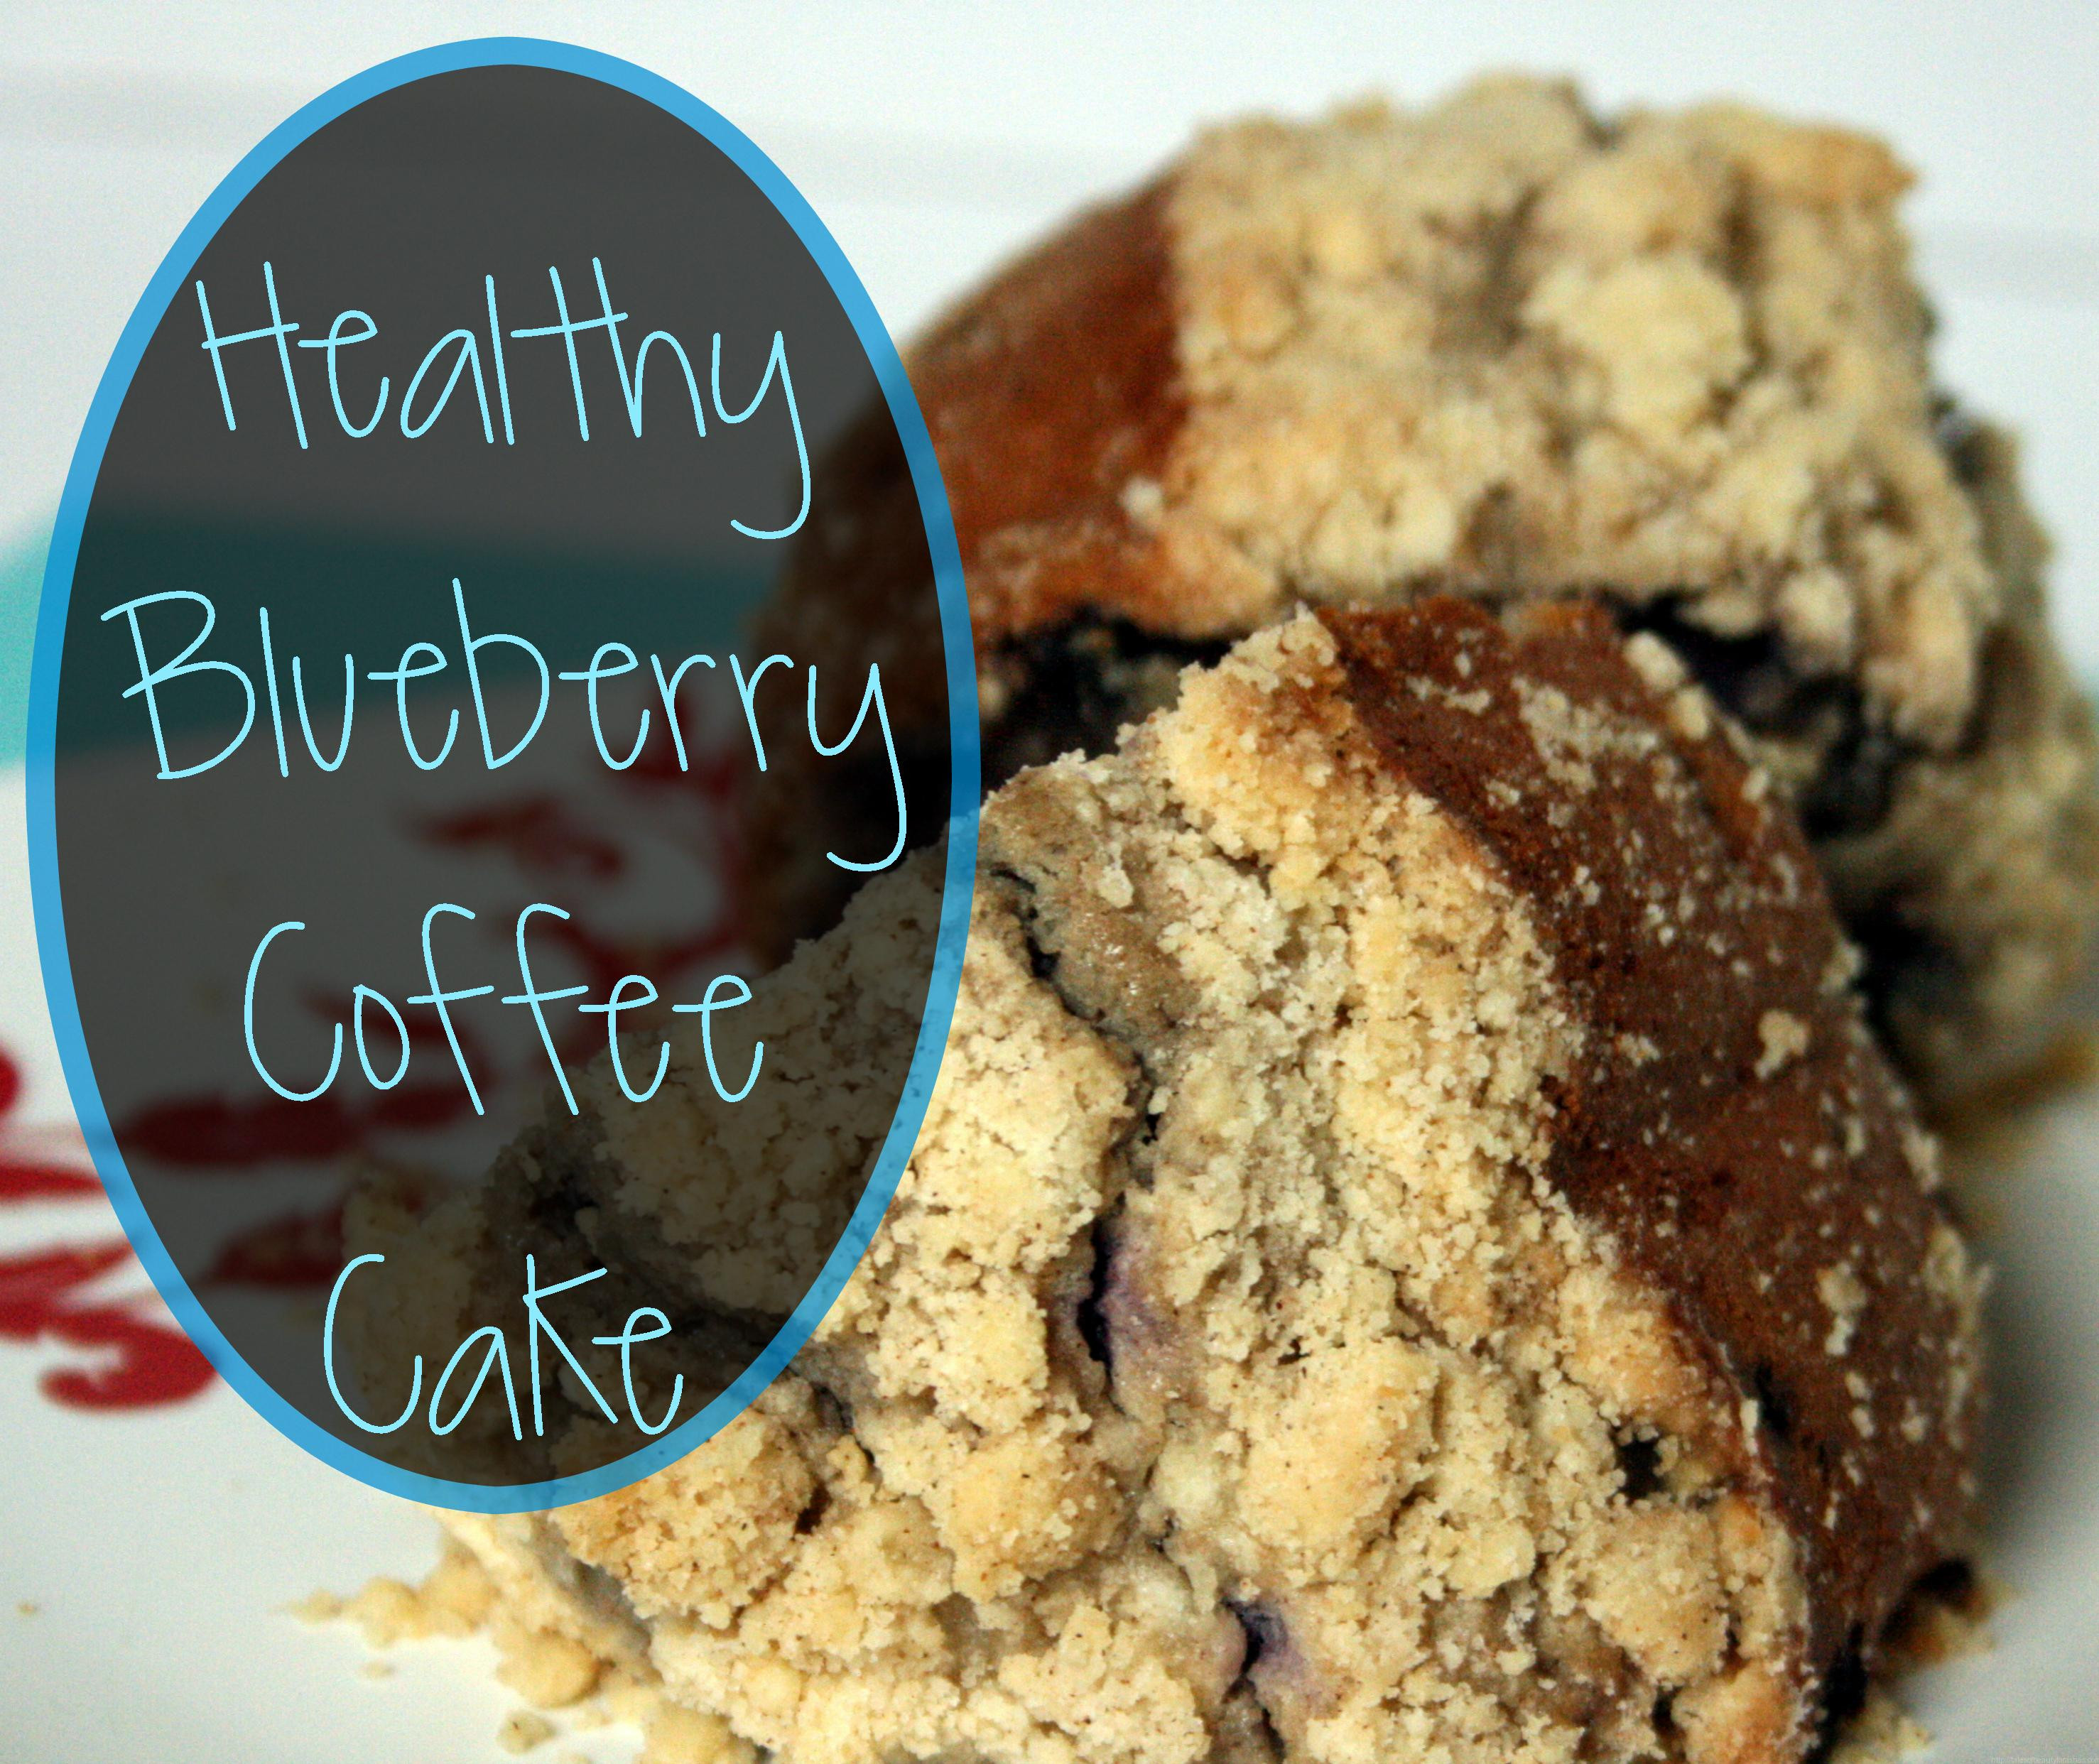 Healthy Blueberry Coffee Cake  Healthy Blueberry Coffee Cake Tales of Beauty for Ashes